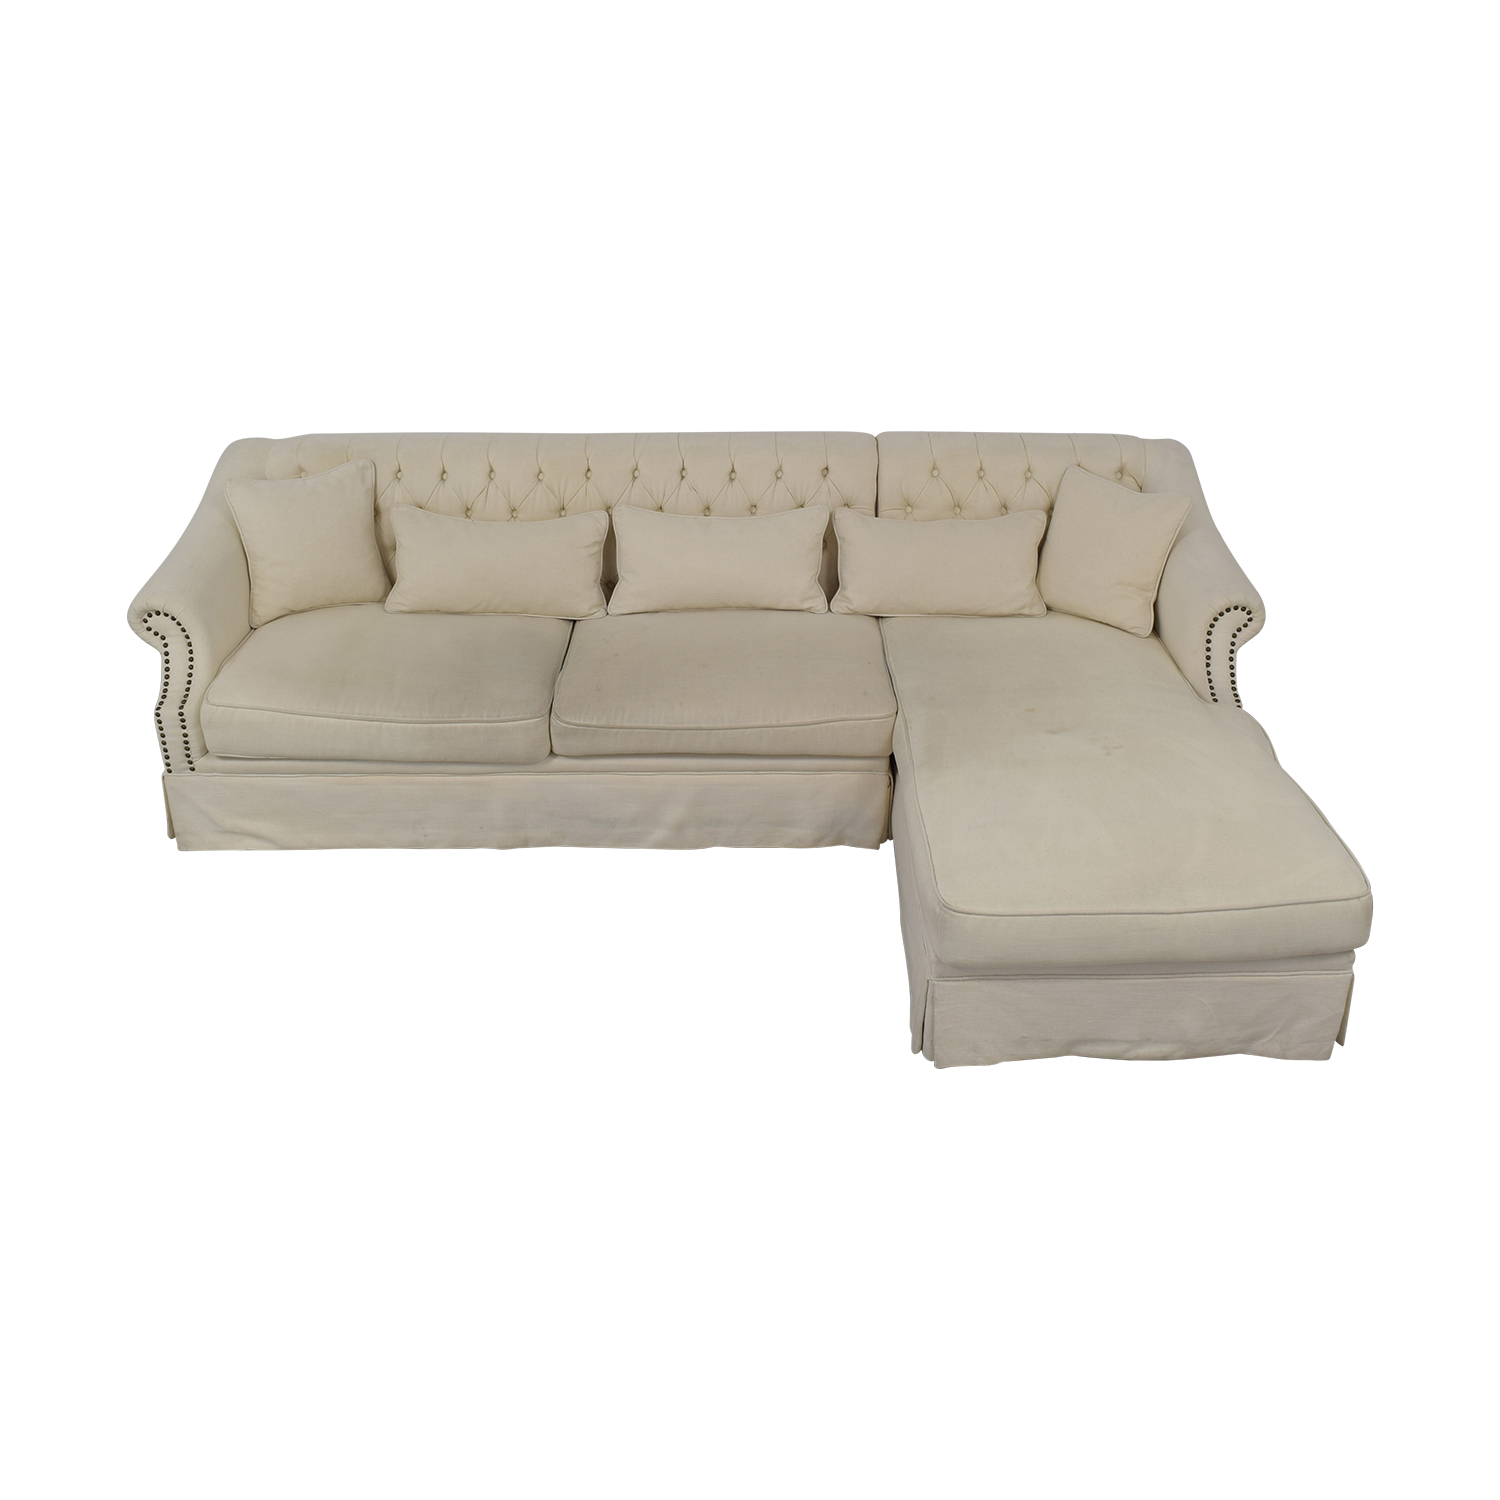 shop ABC Carpet & Home ABC Carpet & Home Chaise Sectional Sofa online